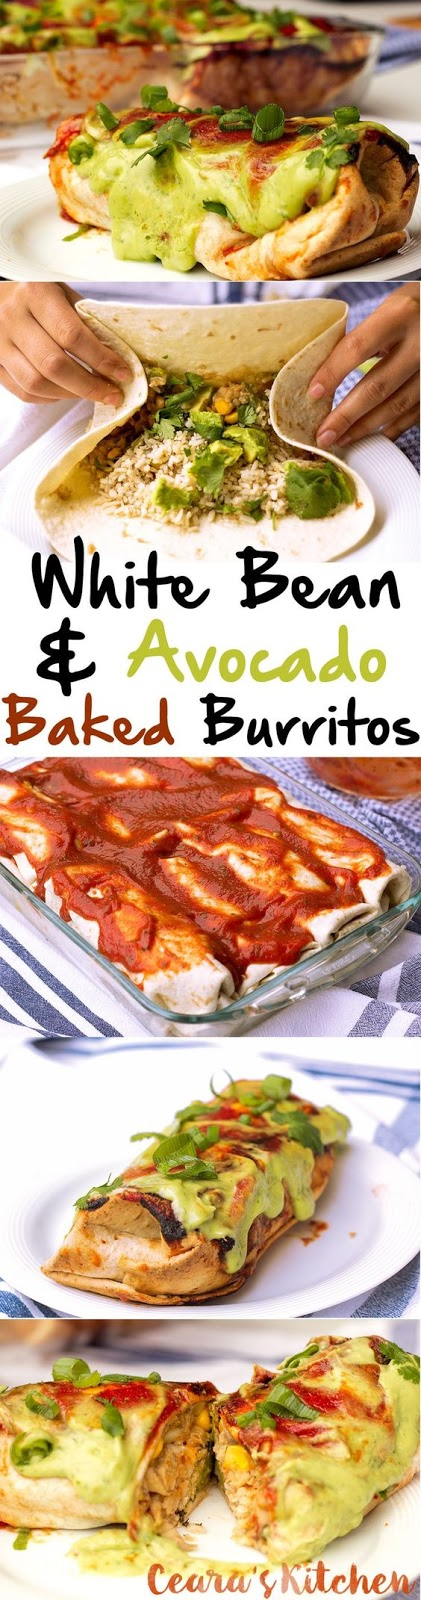 ★★★★☆ 7561 ratings | WHITE BEAN AND AVOCADO BAKED BURRITOS #HEALTHYFOOD #EASYRECIPES #DINNER #LAUCH #DELICIOUS #EASY #HOLIDAYS #RECIPE #WHITE #BEAN #AVOCADO #BAKED #BURRITOS